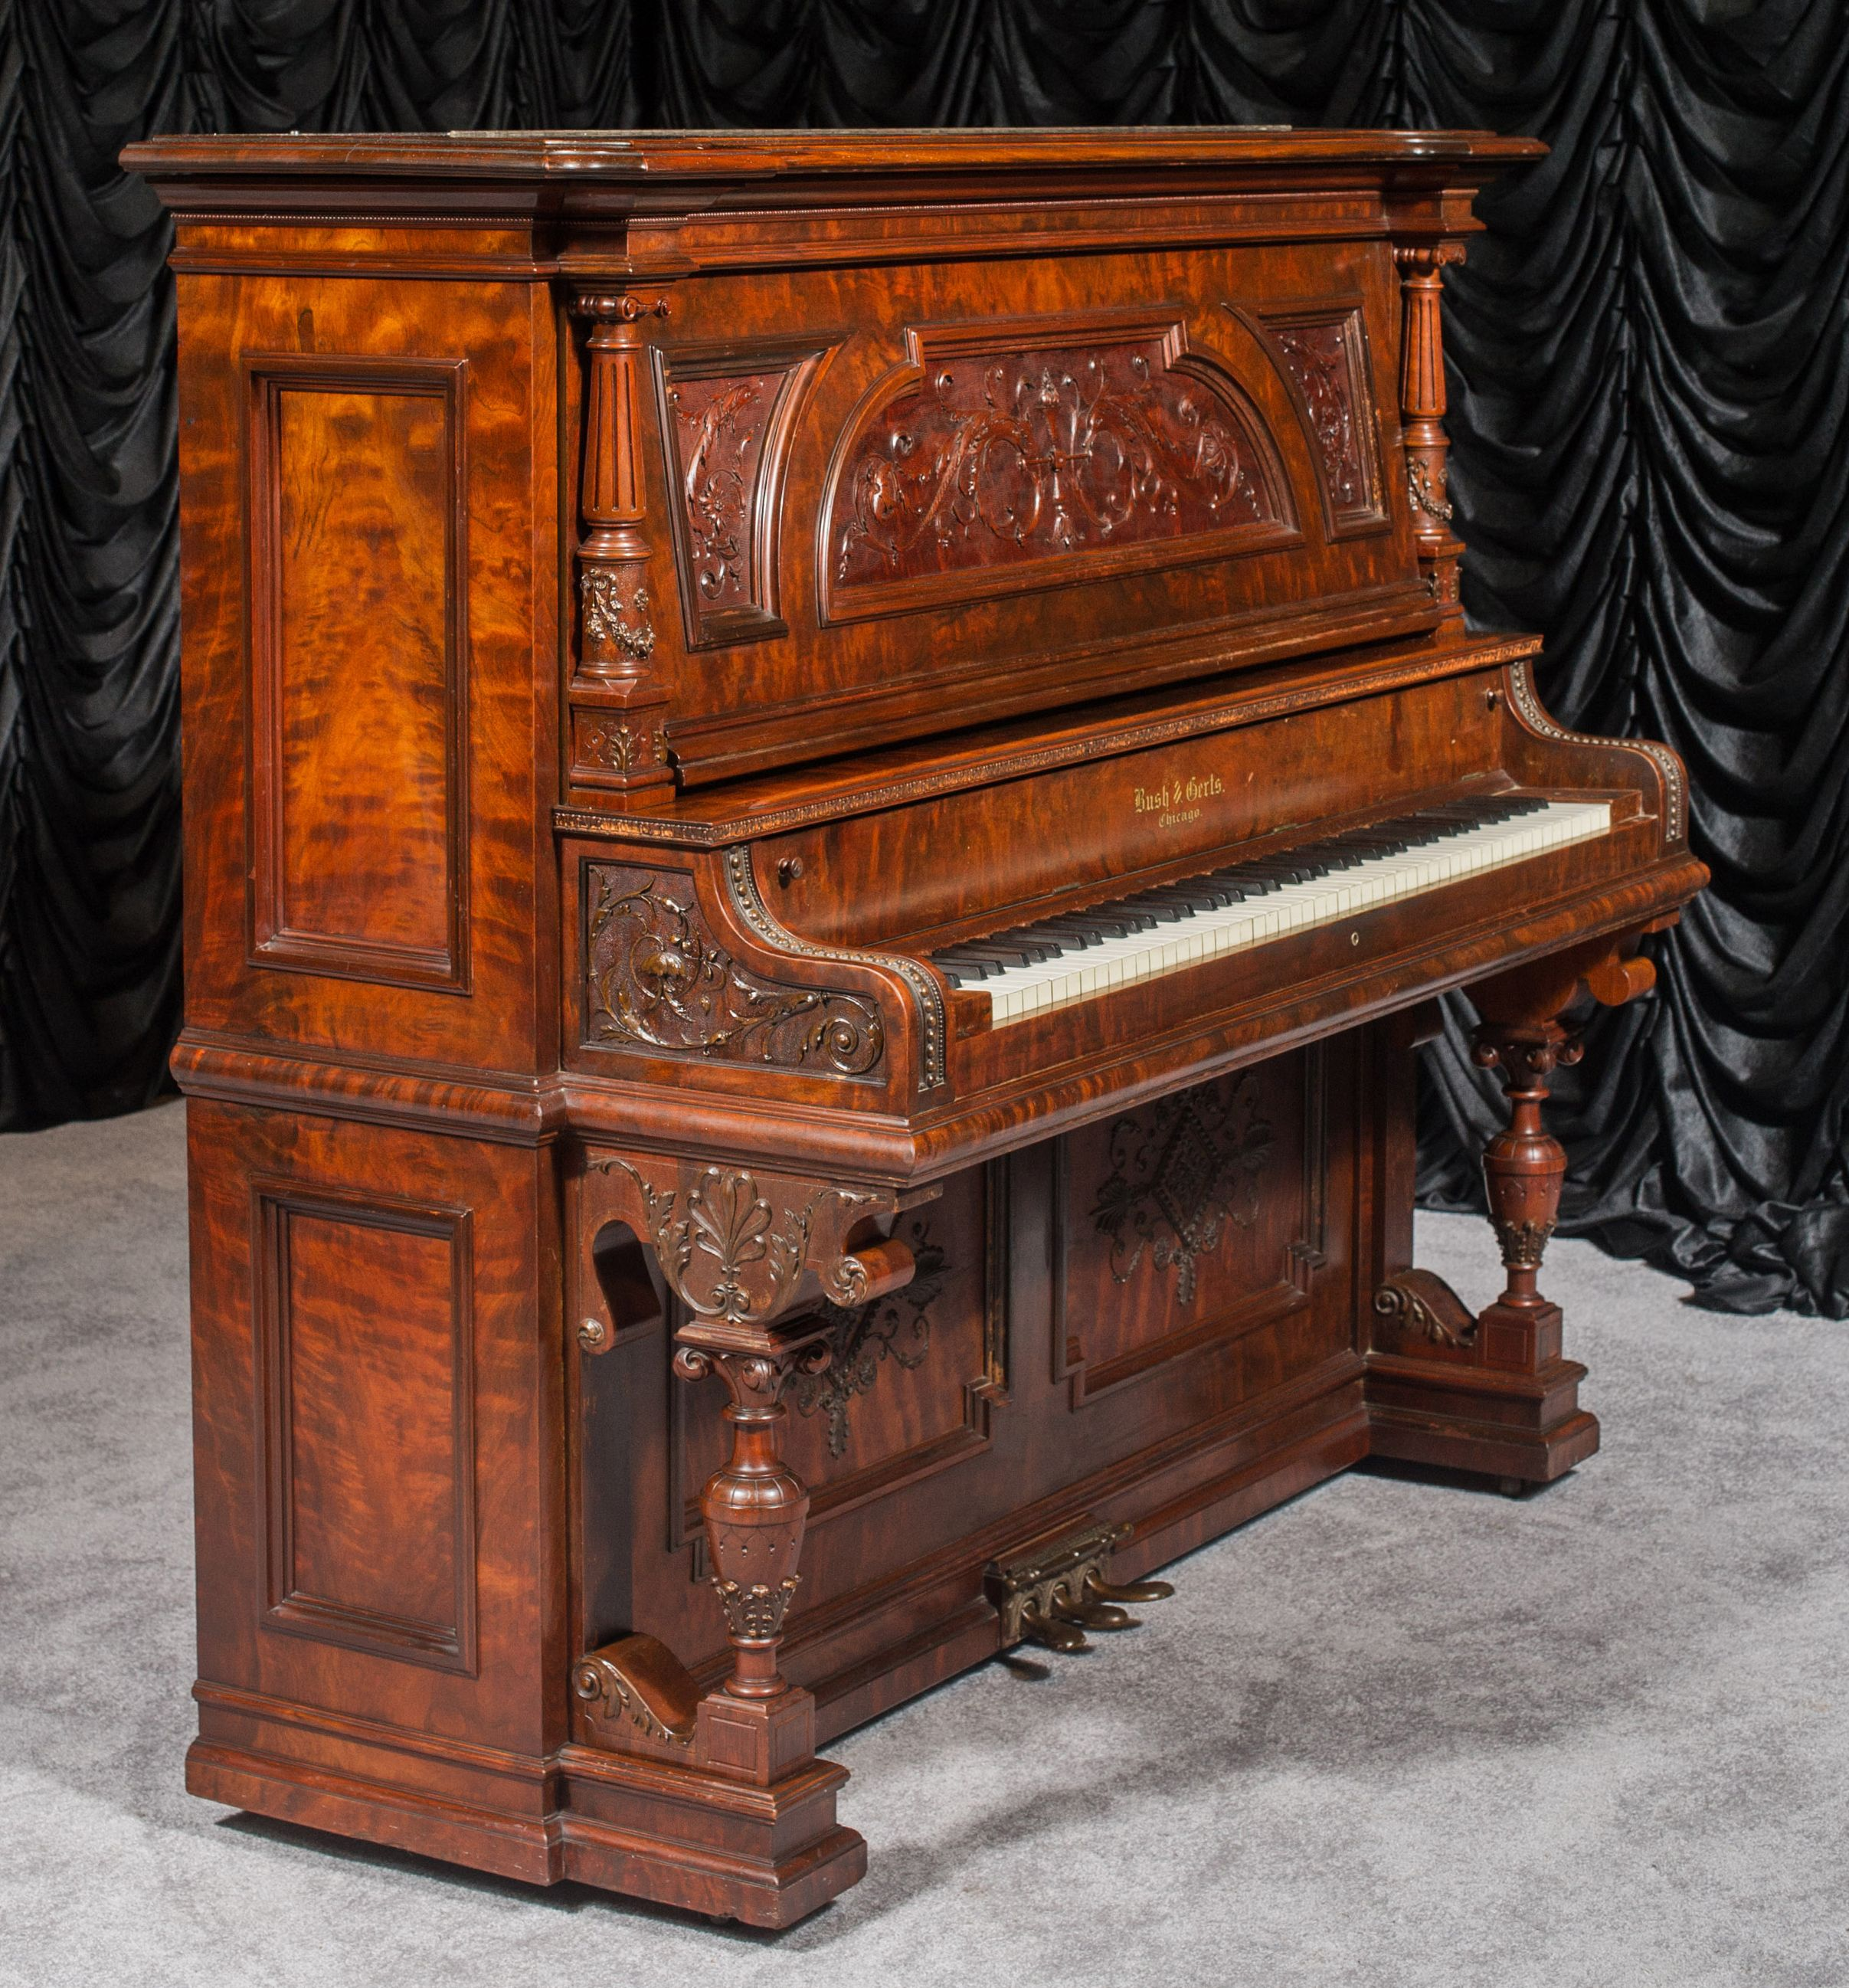 Well Loved And Used. Antiques Upright Victorian Piano With Fluting And Inlaid Decoration